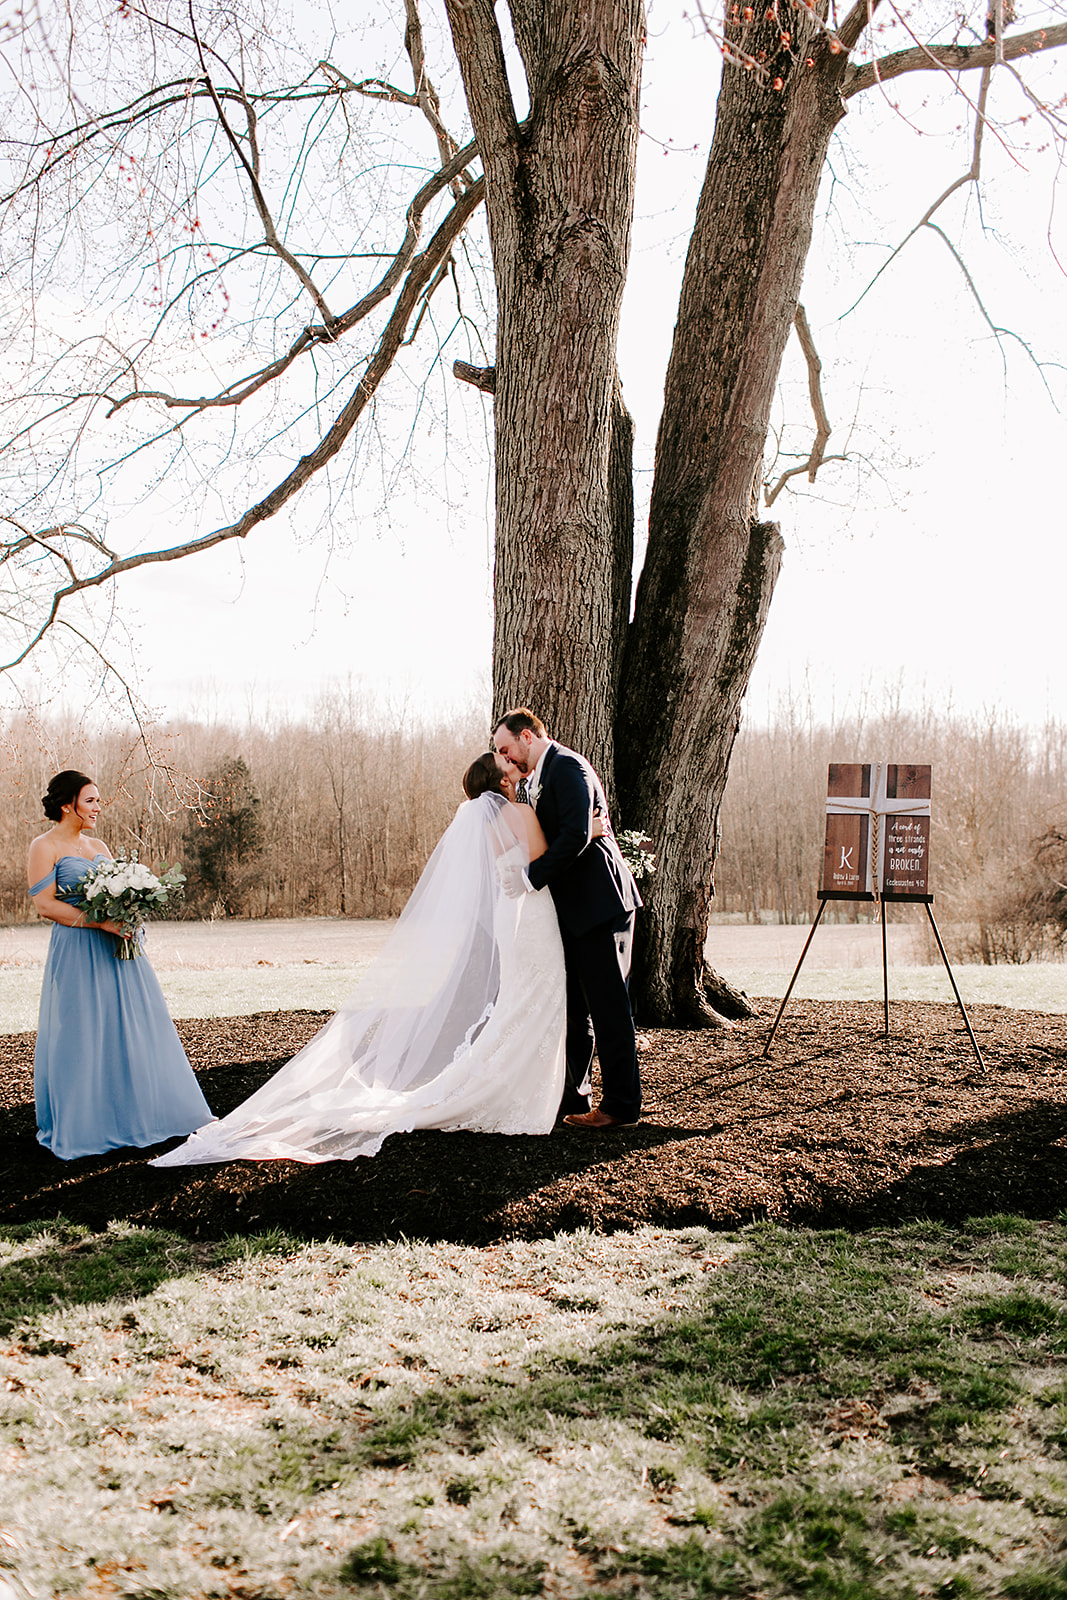 Lauren_and_Andrew_Mustard_Seed_Gardens_Noblesville_Indiana_by_Emily_Wehner_Photography-552.jpg